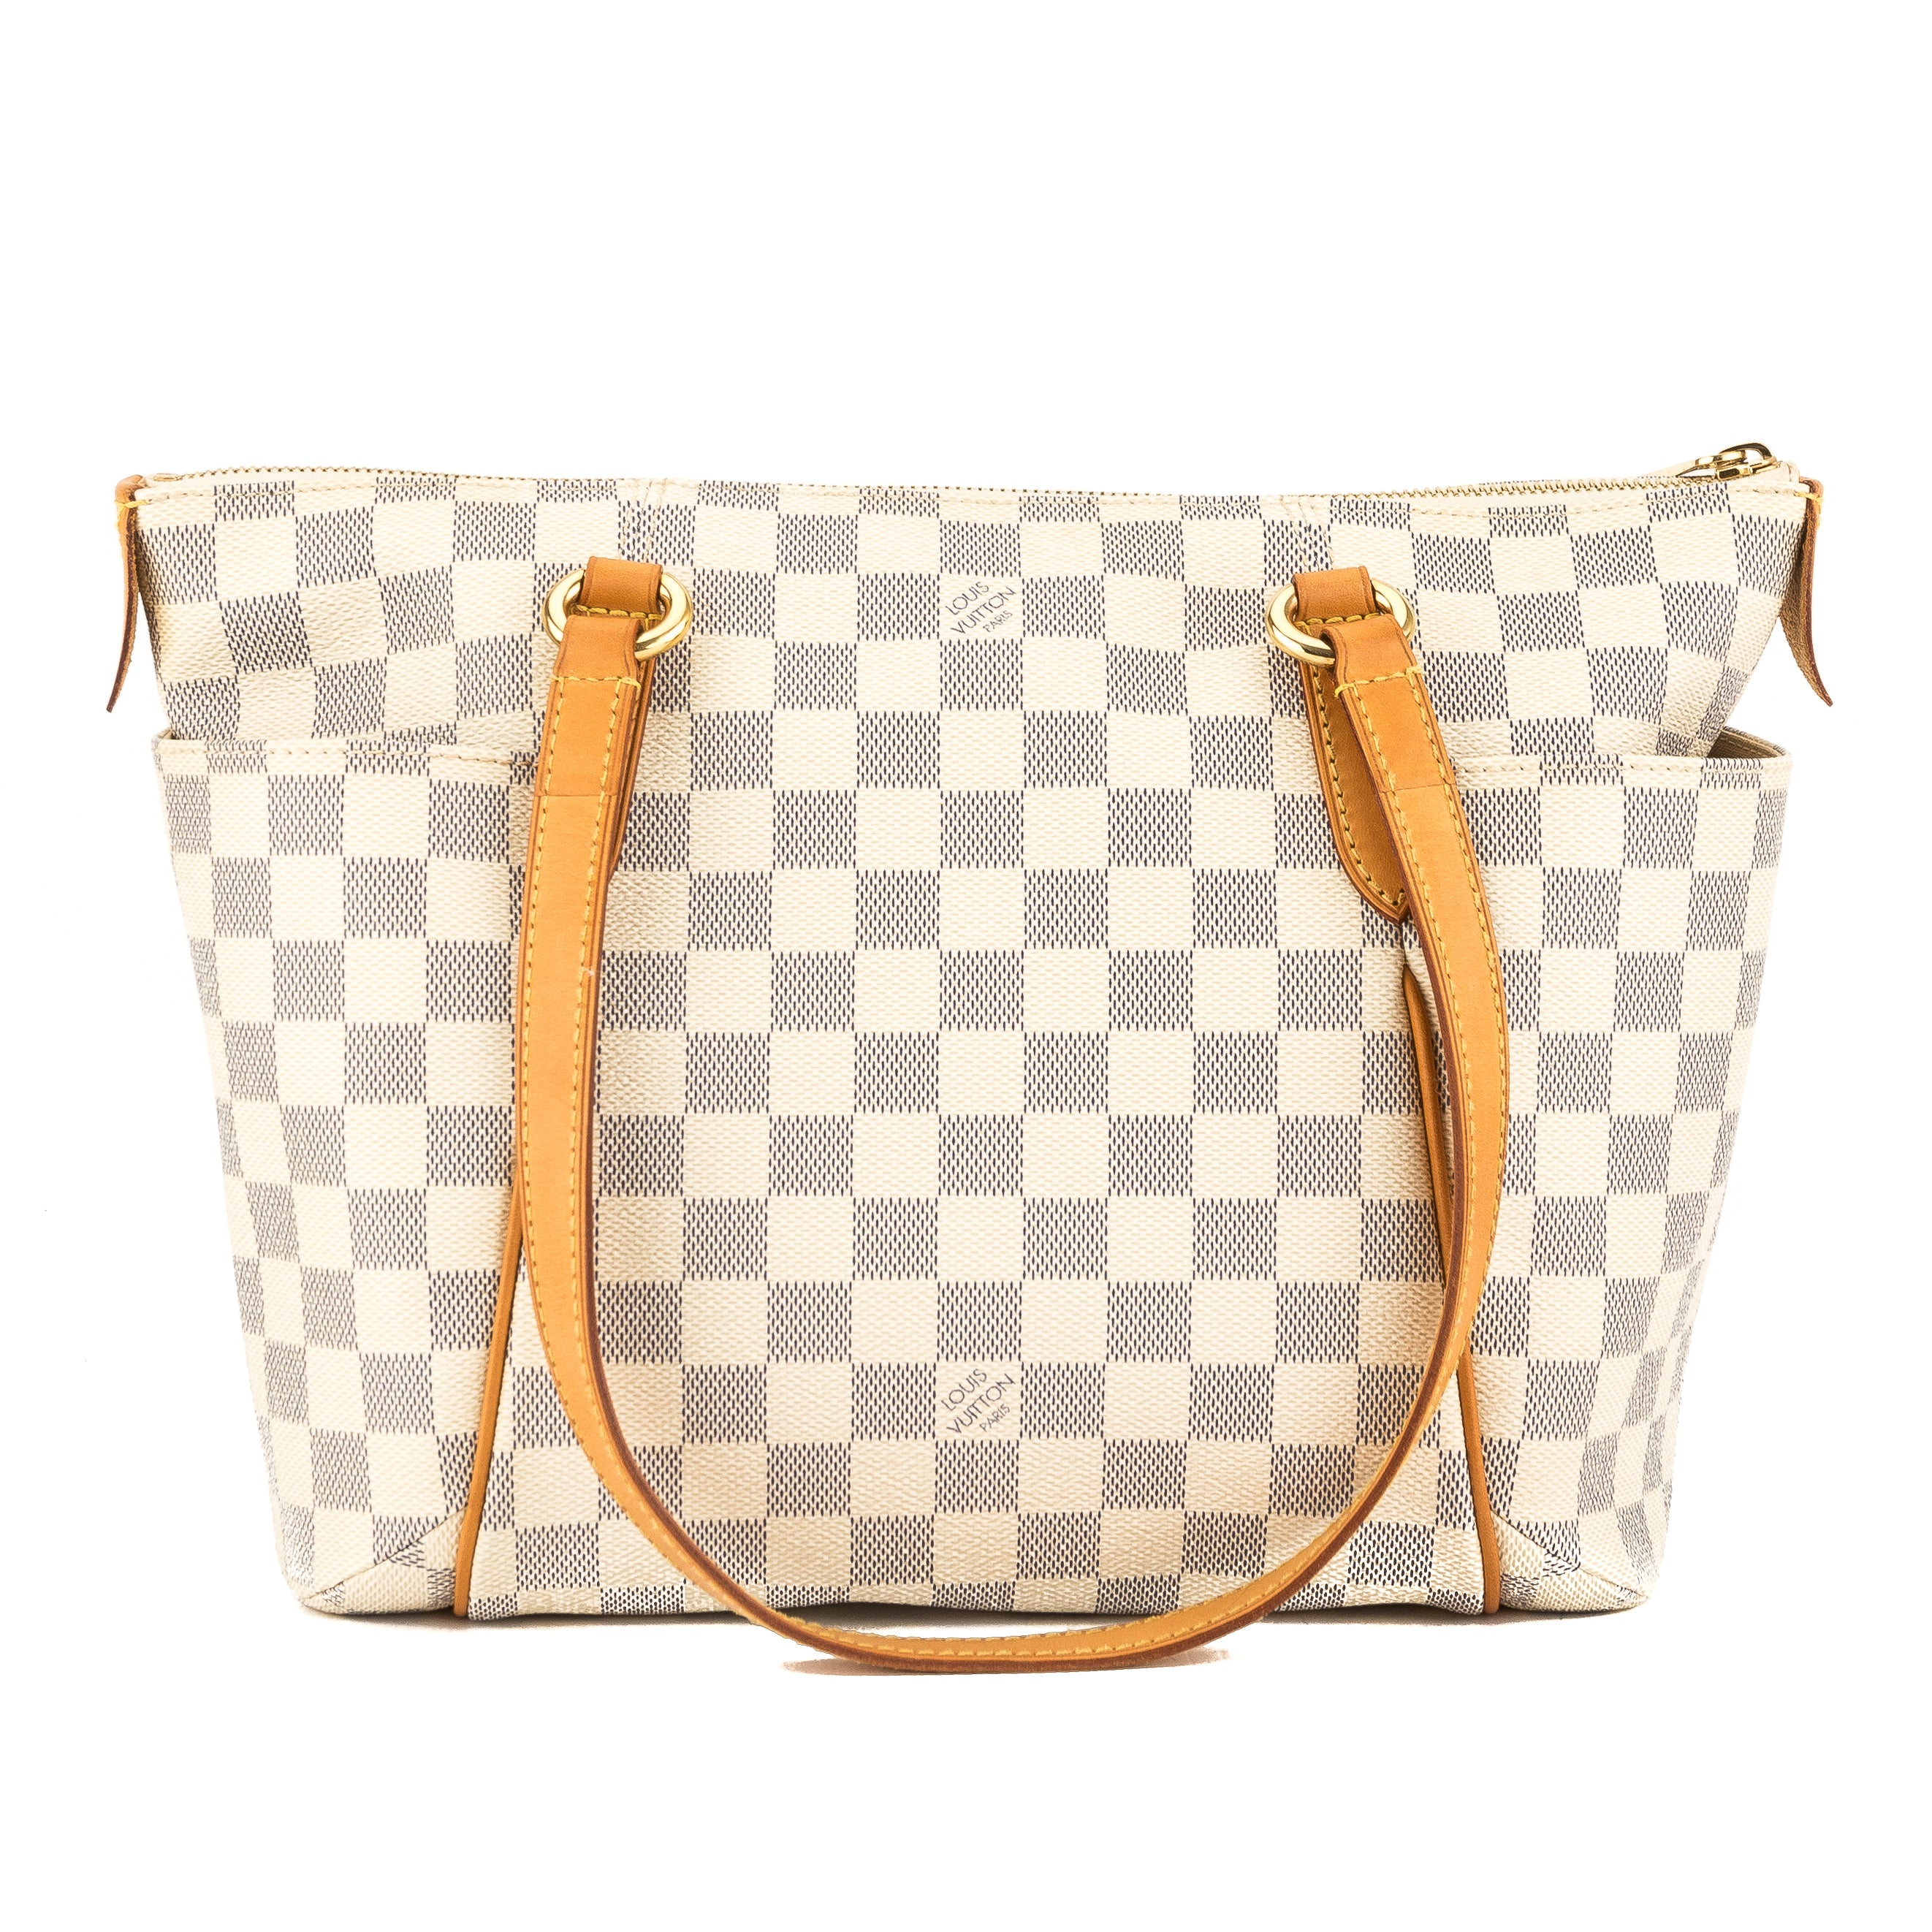 8032ac0f6de8 Louis Vuitton Damier Ebene Canvas Totally PM Bag (Pre Owned ...